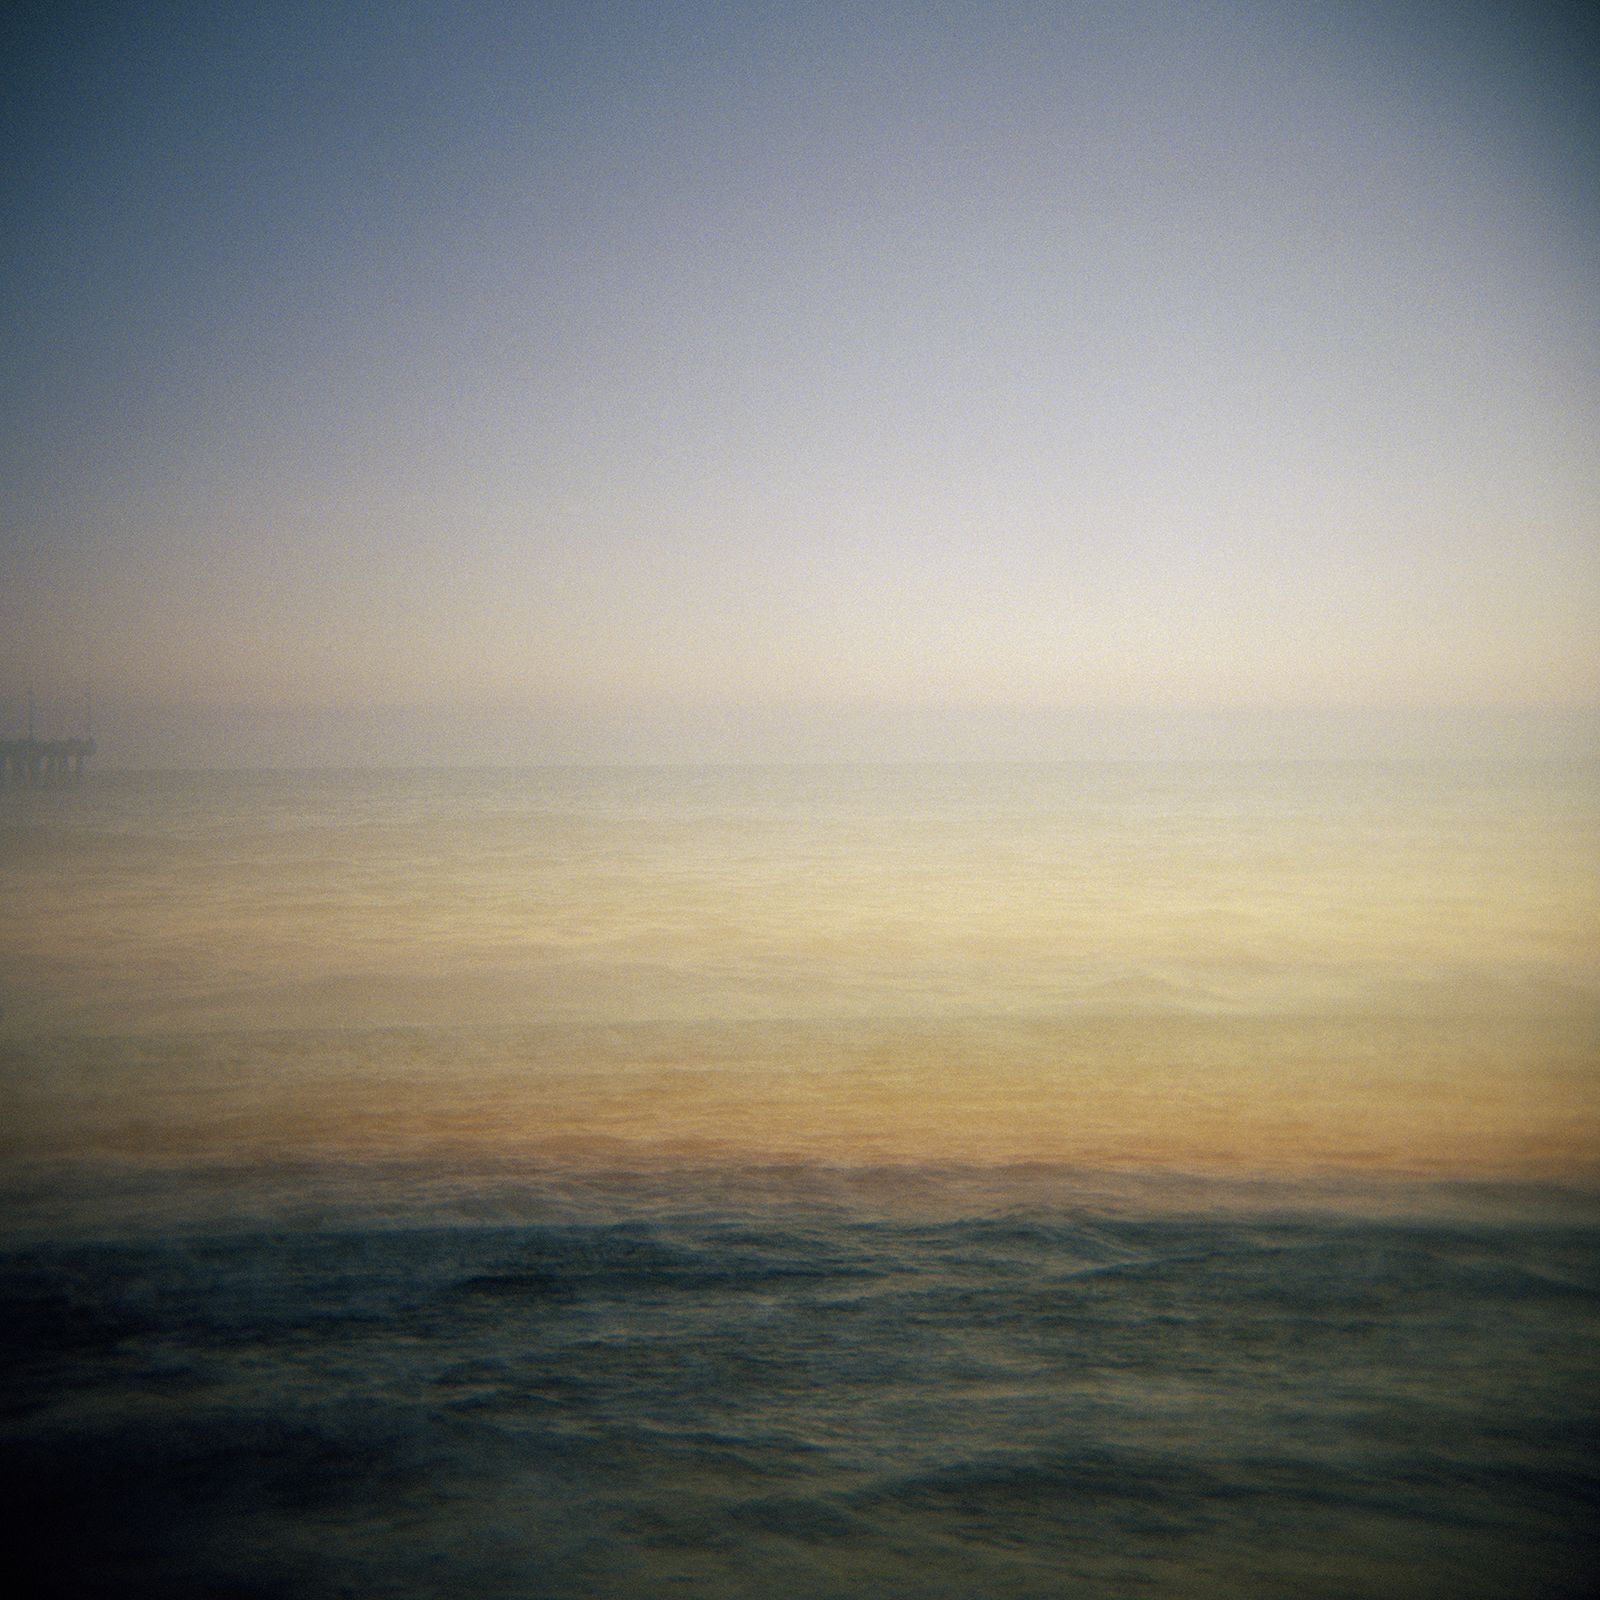 Sunset double exposure of the Pacific in Venice, CA.  #venice #sunset #holga #doubleexposure #film #ashleygarmon #ashleygarmonholga #chasingthesuns